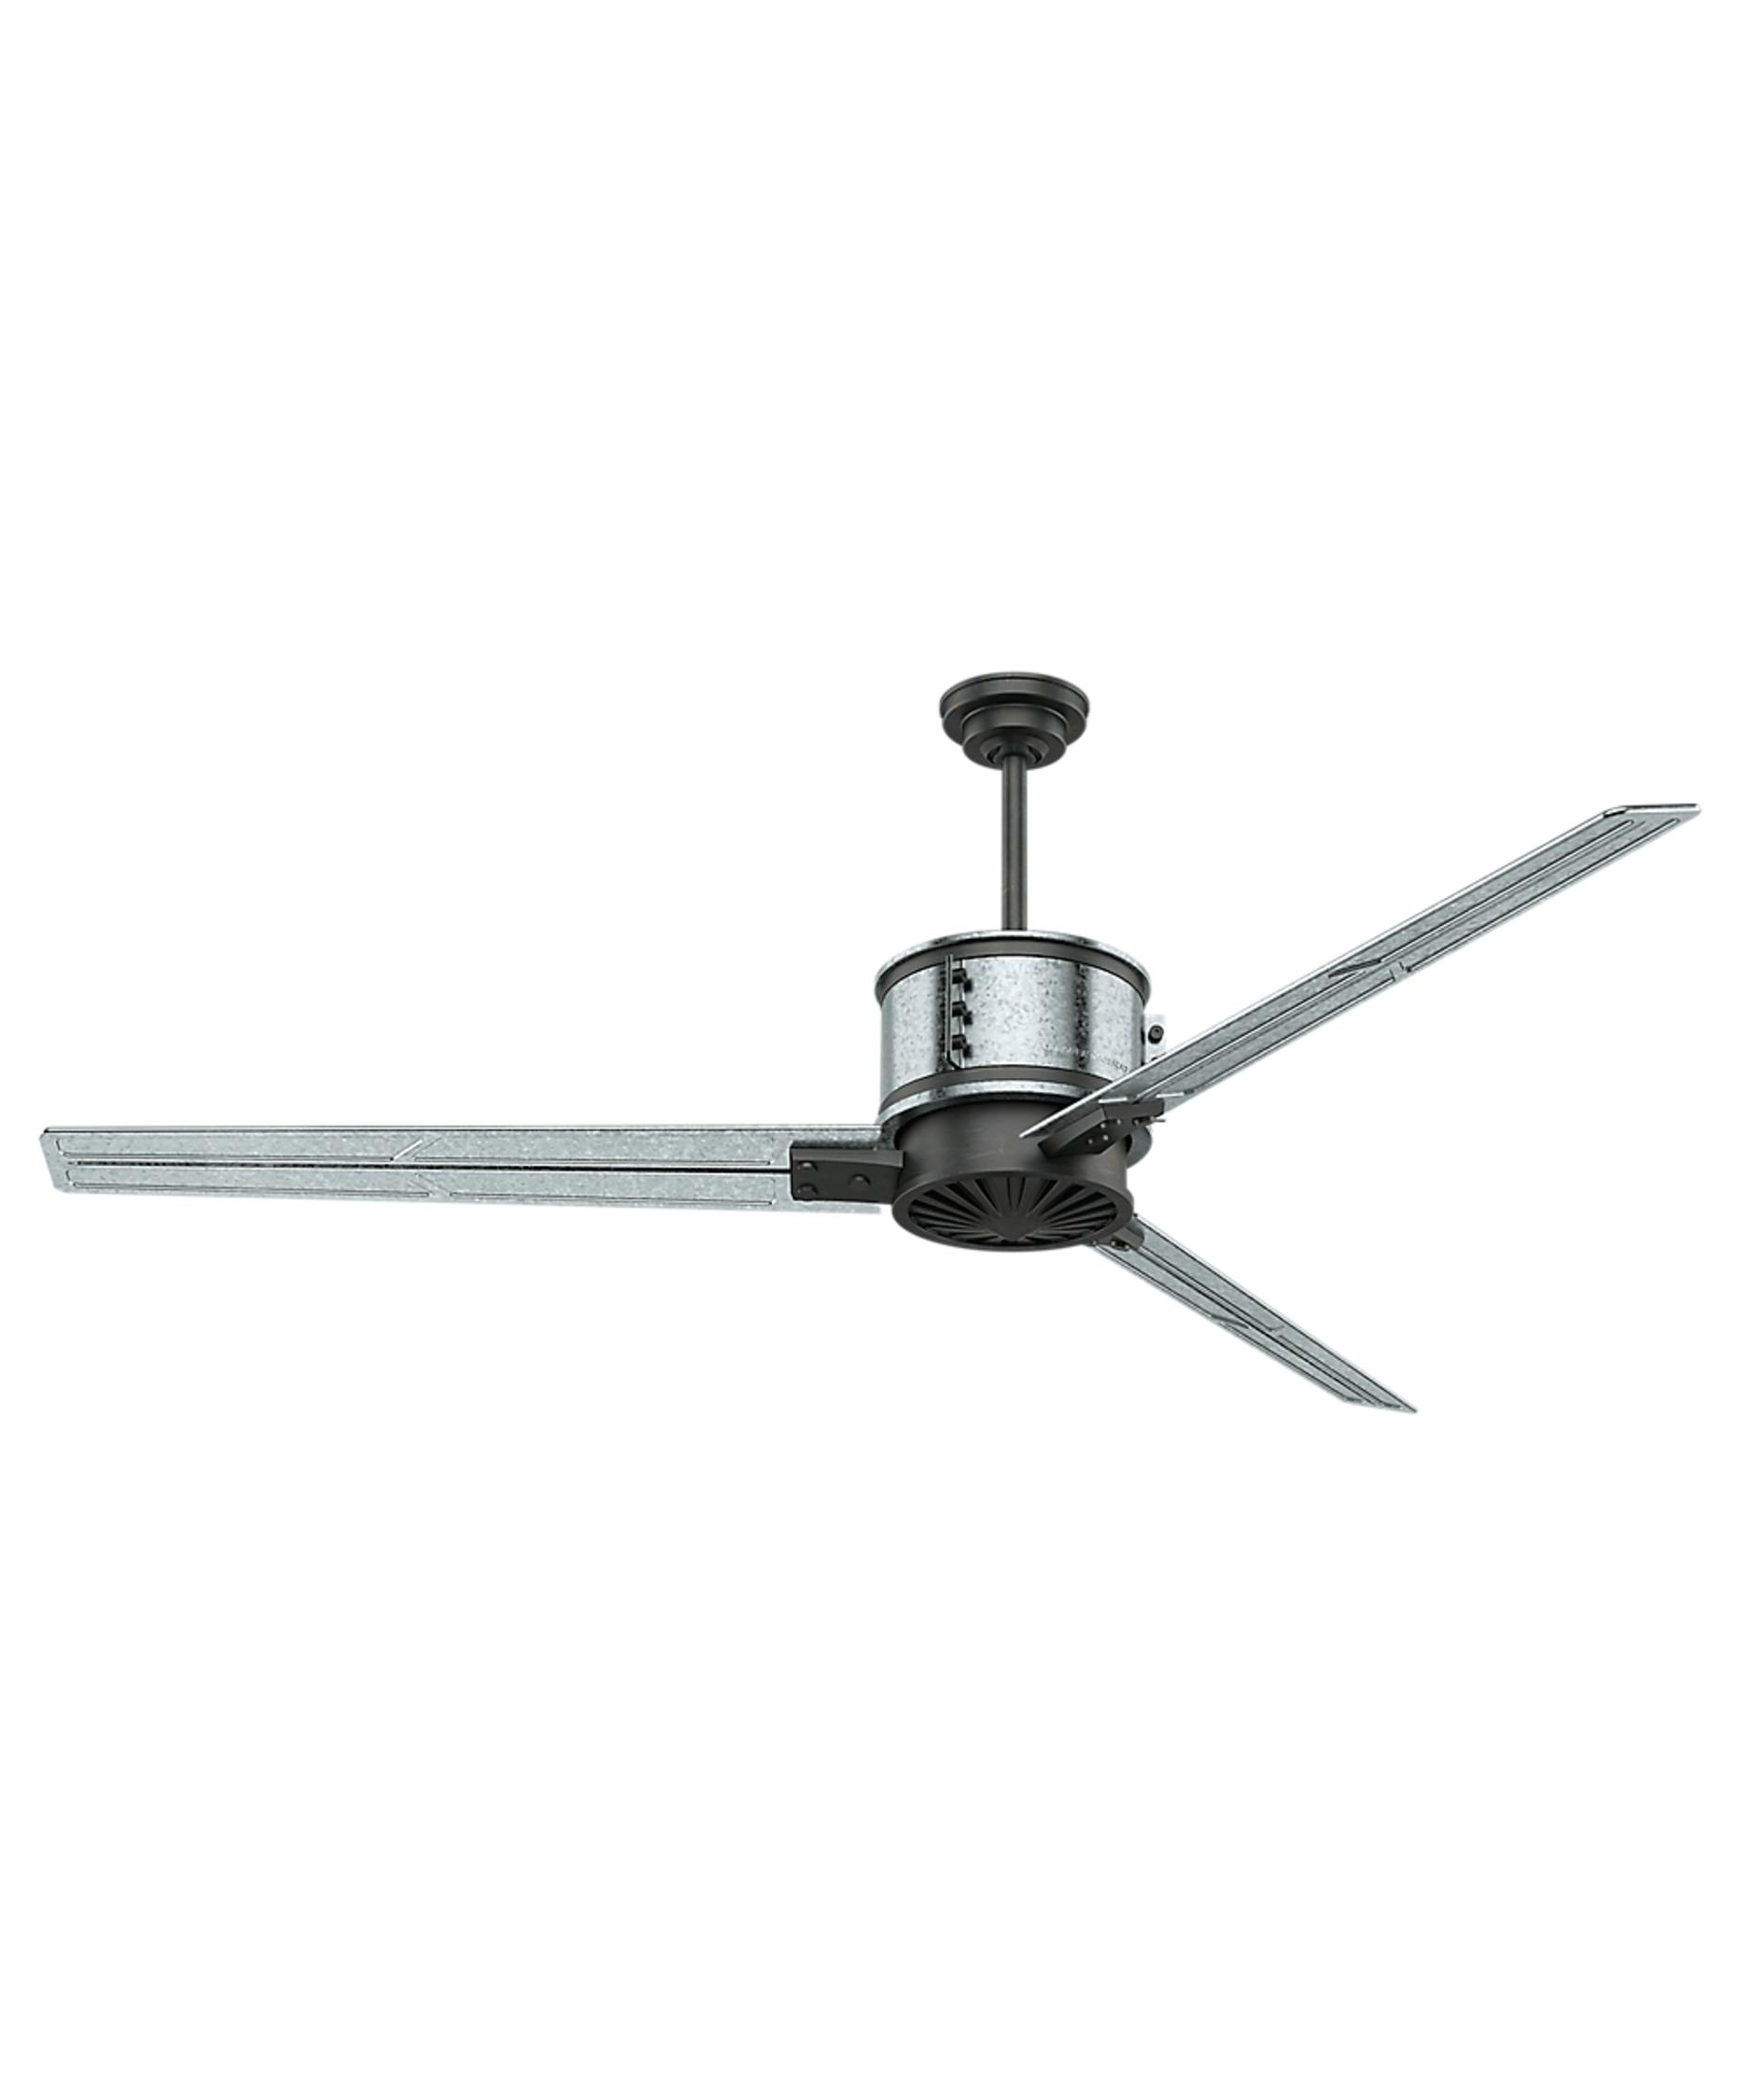 72 Inch Outdoor Ceiling Fans With Light With Regard To Well Known Casablanca 59193 Duluth 72 Inch 3 Blade Ceiling Fan (Gallery 17 of 20)